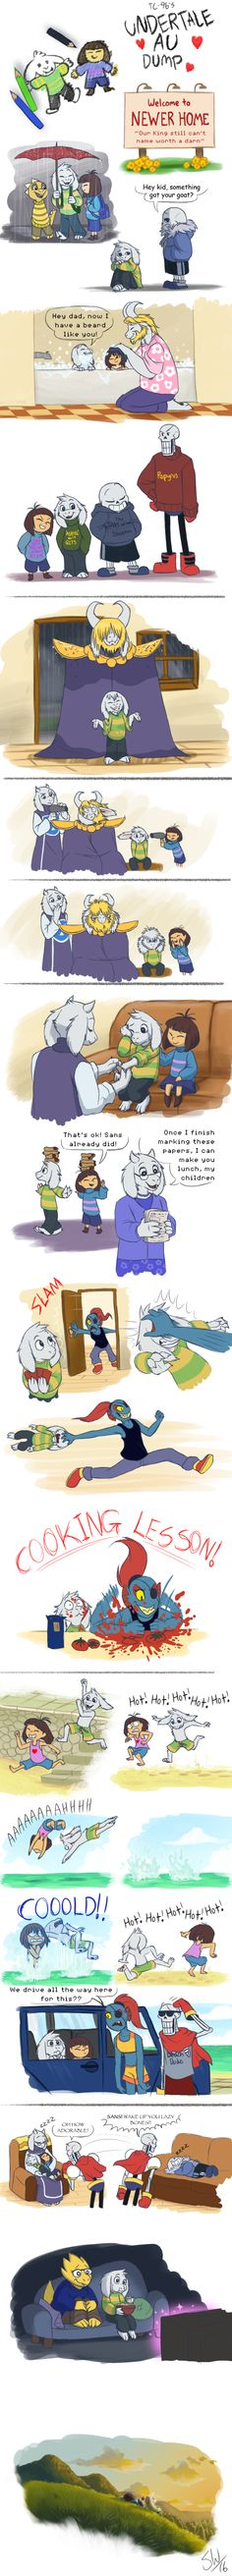 ((THIS IS ADORABLE Ohmygod)) Undertale AU - SketchDump by TC-96.deviantart.com on @DeviantArt